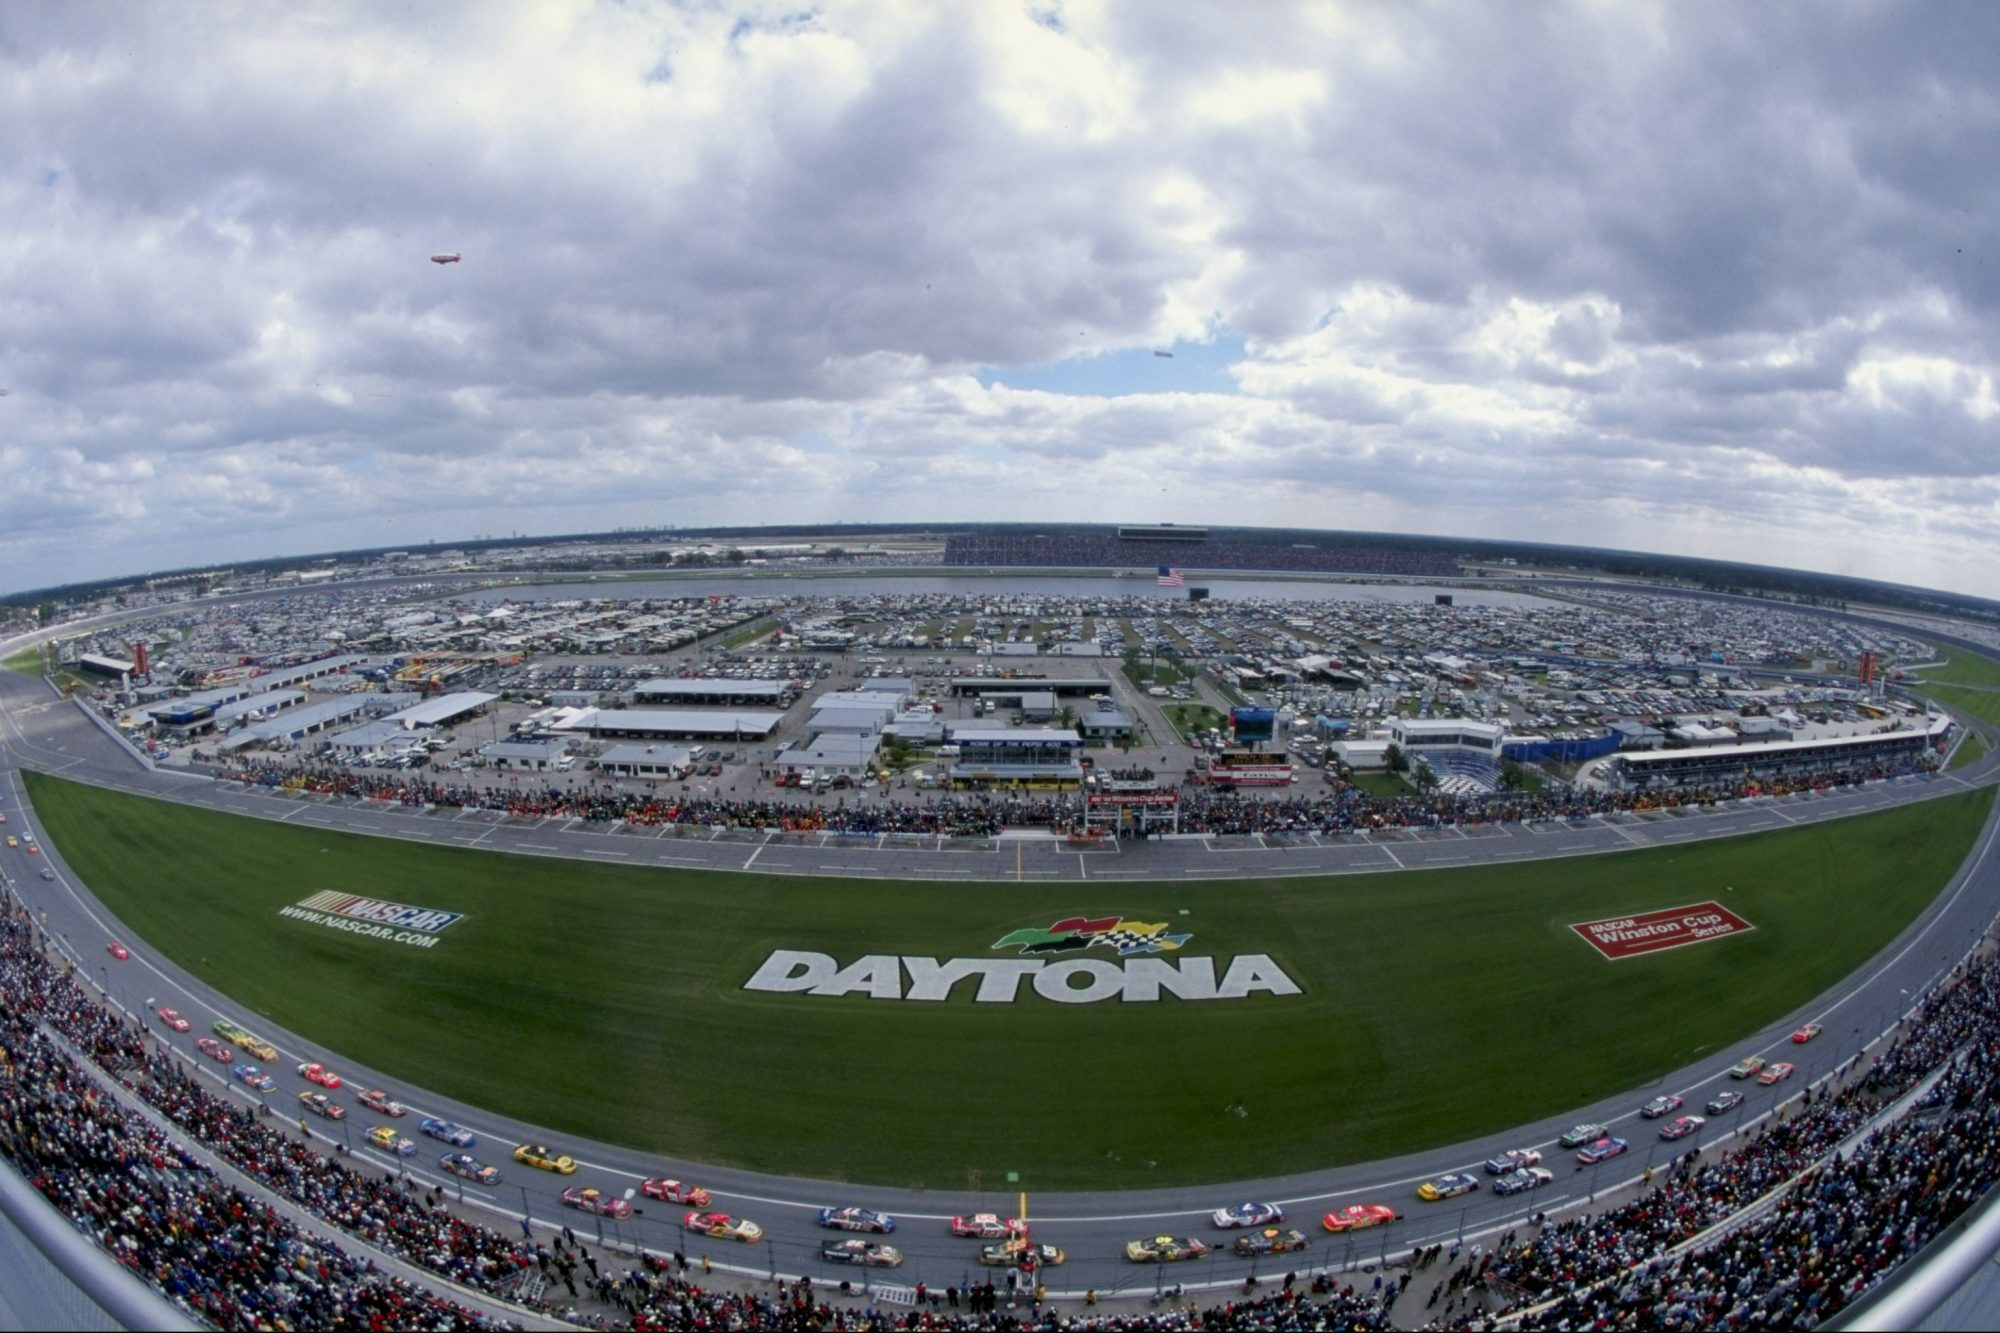 Daytona International Speedway Aerial Shot